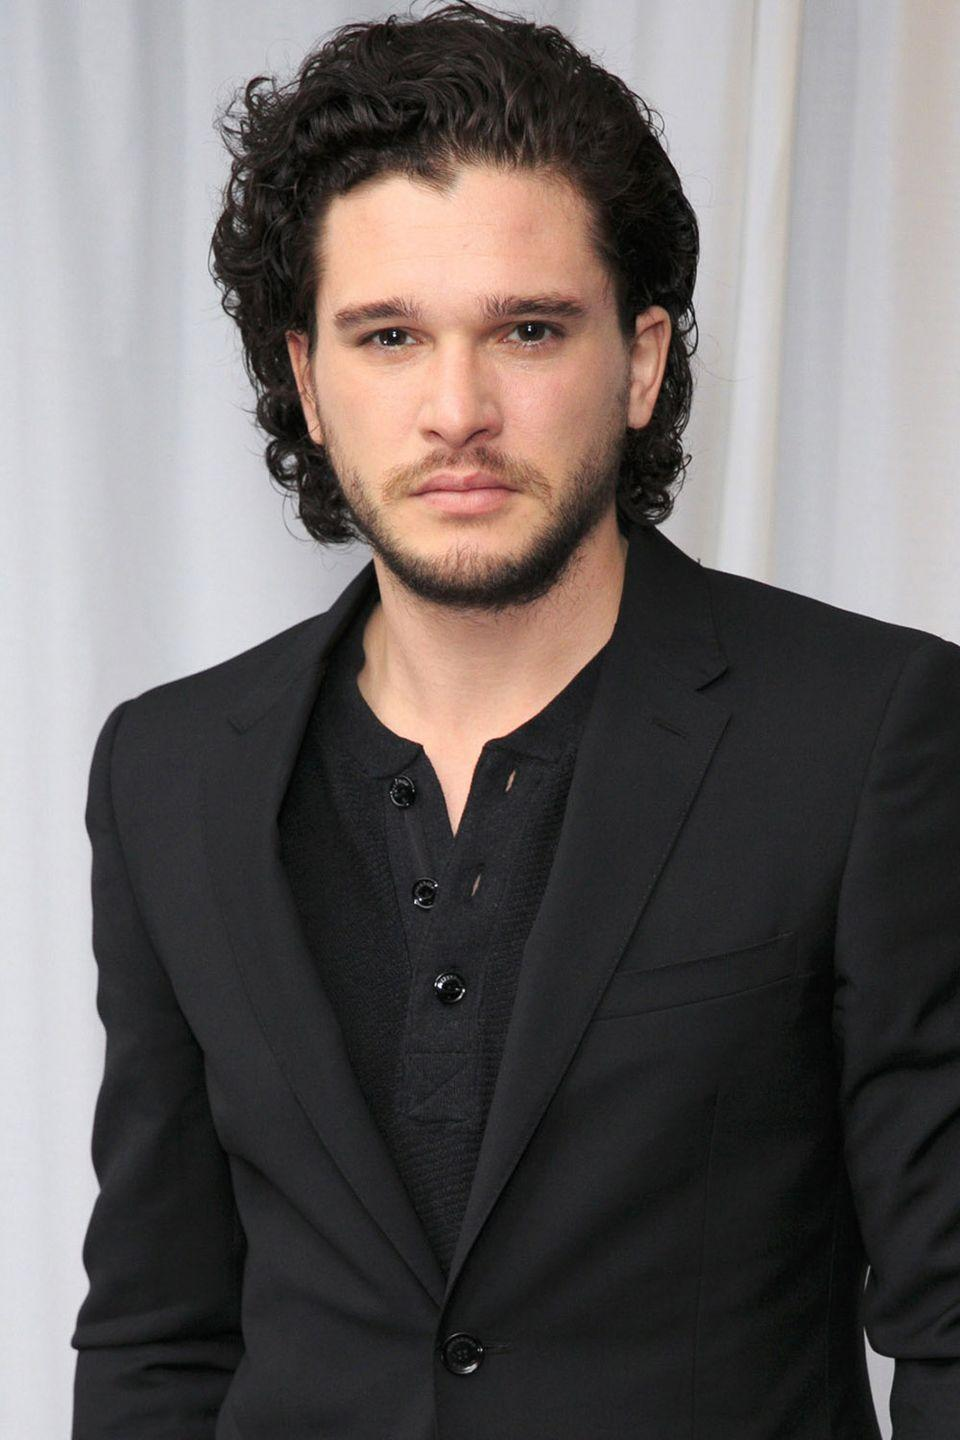 """<p><strong>Born</strong>: Christopher Catesby Harington</p><p>In an interview with <em><a href=""""https://www.glamour.com/story/kit-harington-interview"""" rel=""""nofollow noopener"""" target=""""_blank"""" data-ylk=""""slk:Glamour"""" class=""""link rapid-noclick-resp"""">Glamour</a></em>, the <em>Game of Thrones</em> star revealed that his parents didn't tell him his real name was Christopher until he was 11 years old. """"I think they could see that I wanted to be Kit, but Christopher was a bit of a tradition,"""" Harington <a href=""""https://www.glamour.com/story/kit-harington-interview"""" rel=""""nofollow noopener"""" target=""""_blank"""" data-ylk=""""slk:explained"""" class=""""link rapid-noclick-resp"""">explained</a>. """"My brother's name is Jack, but his real name is John. Kit is traditionally an offshoot of Christopher, it's just not used that often. My middle name is Catesby.""""</p>"""